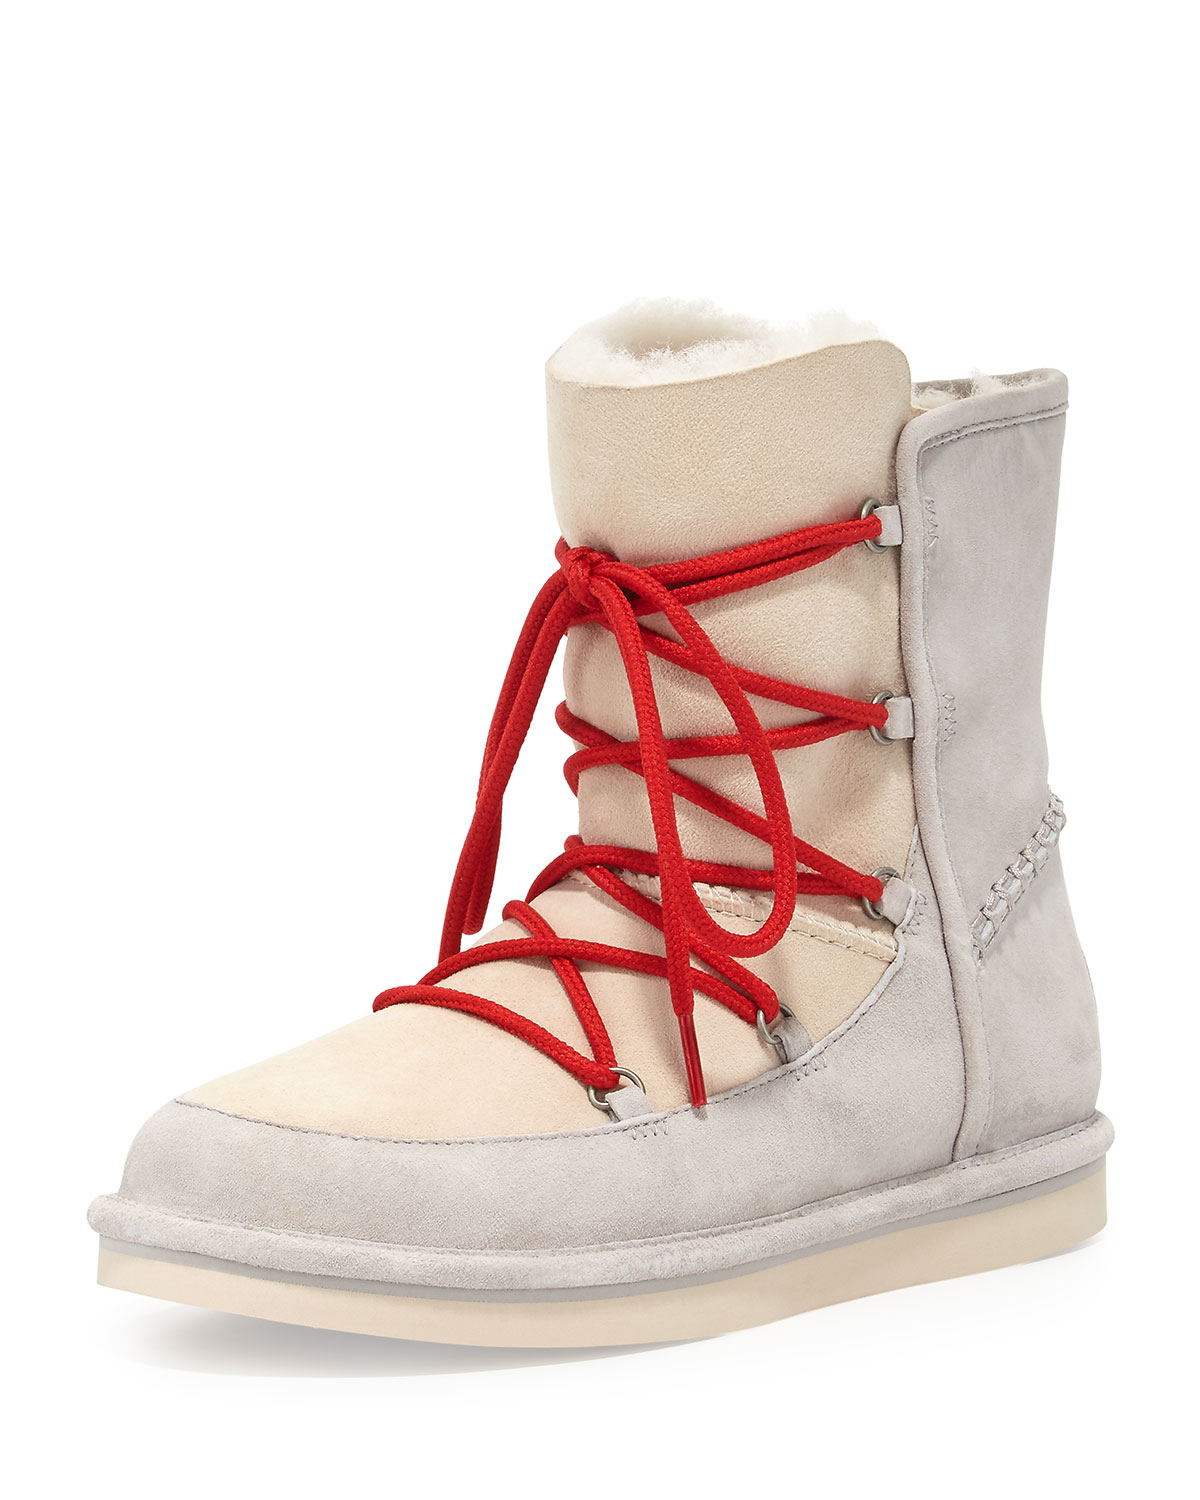 7aca44dd4b5 reduced red and white ugg boots b9764 d0d35